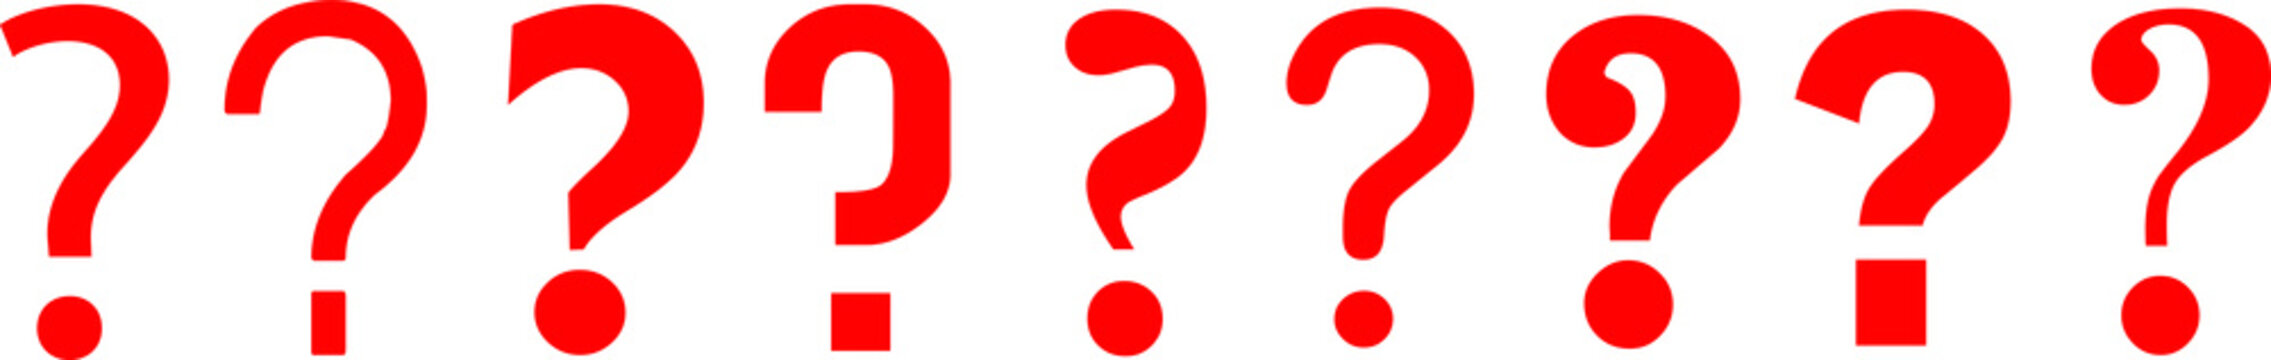 Question marks question signs interrogation points ? symbol icon red 3d queries